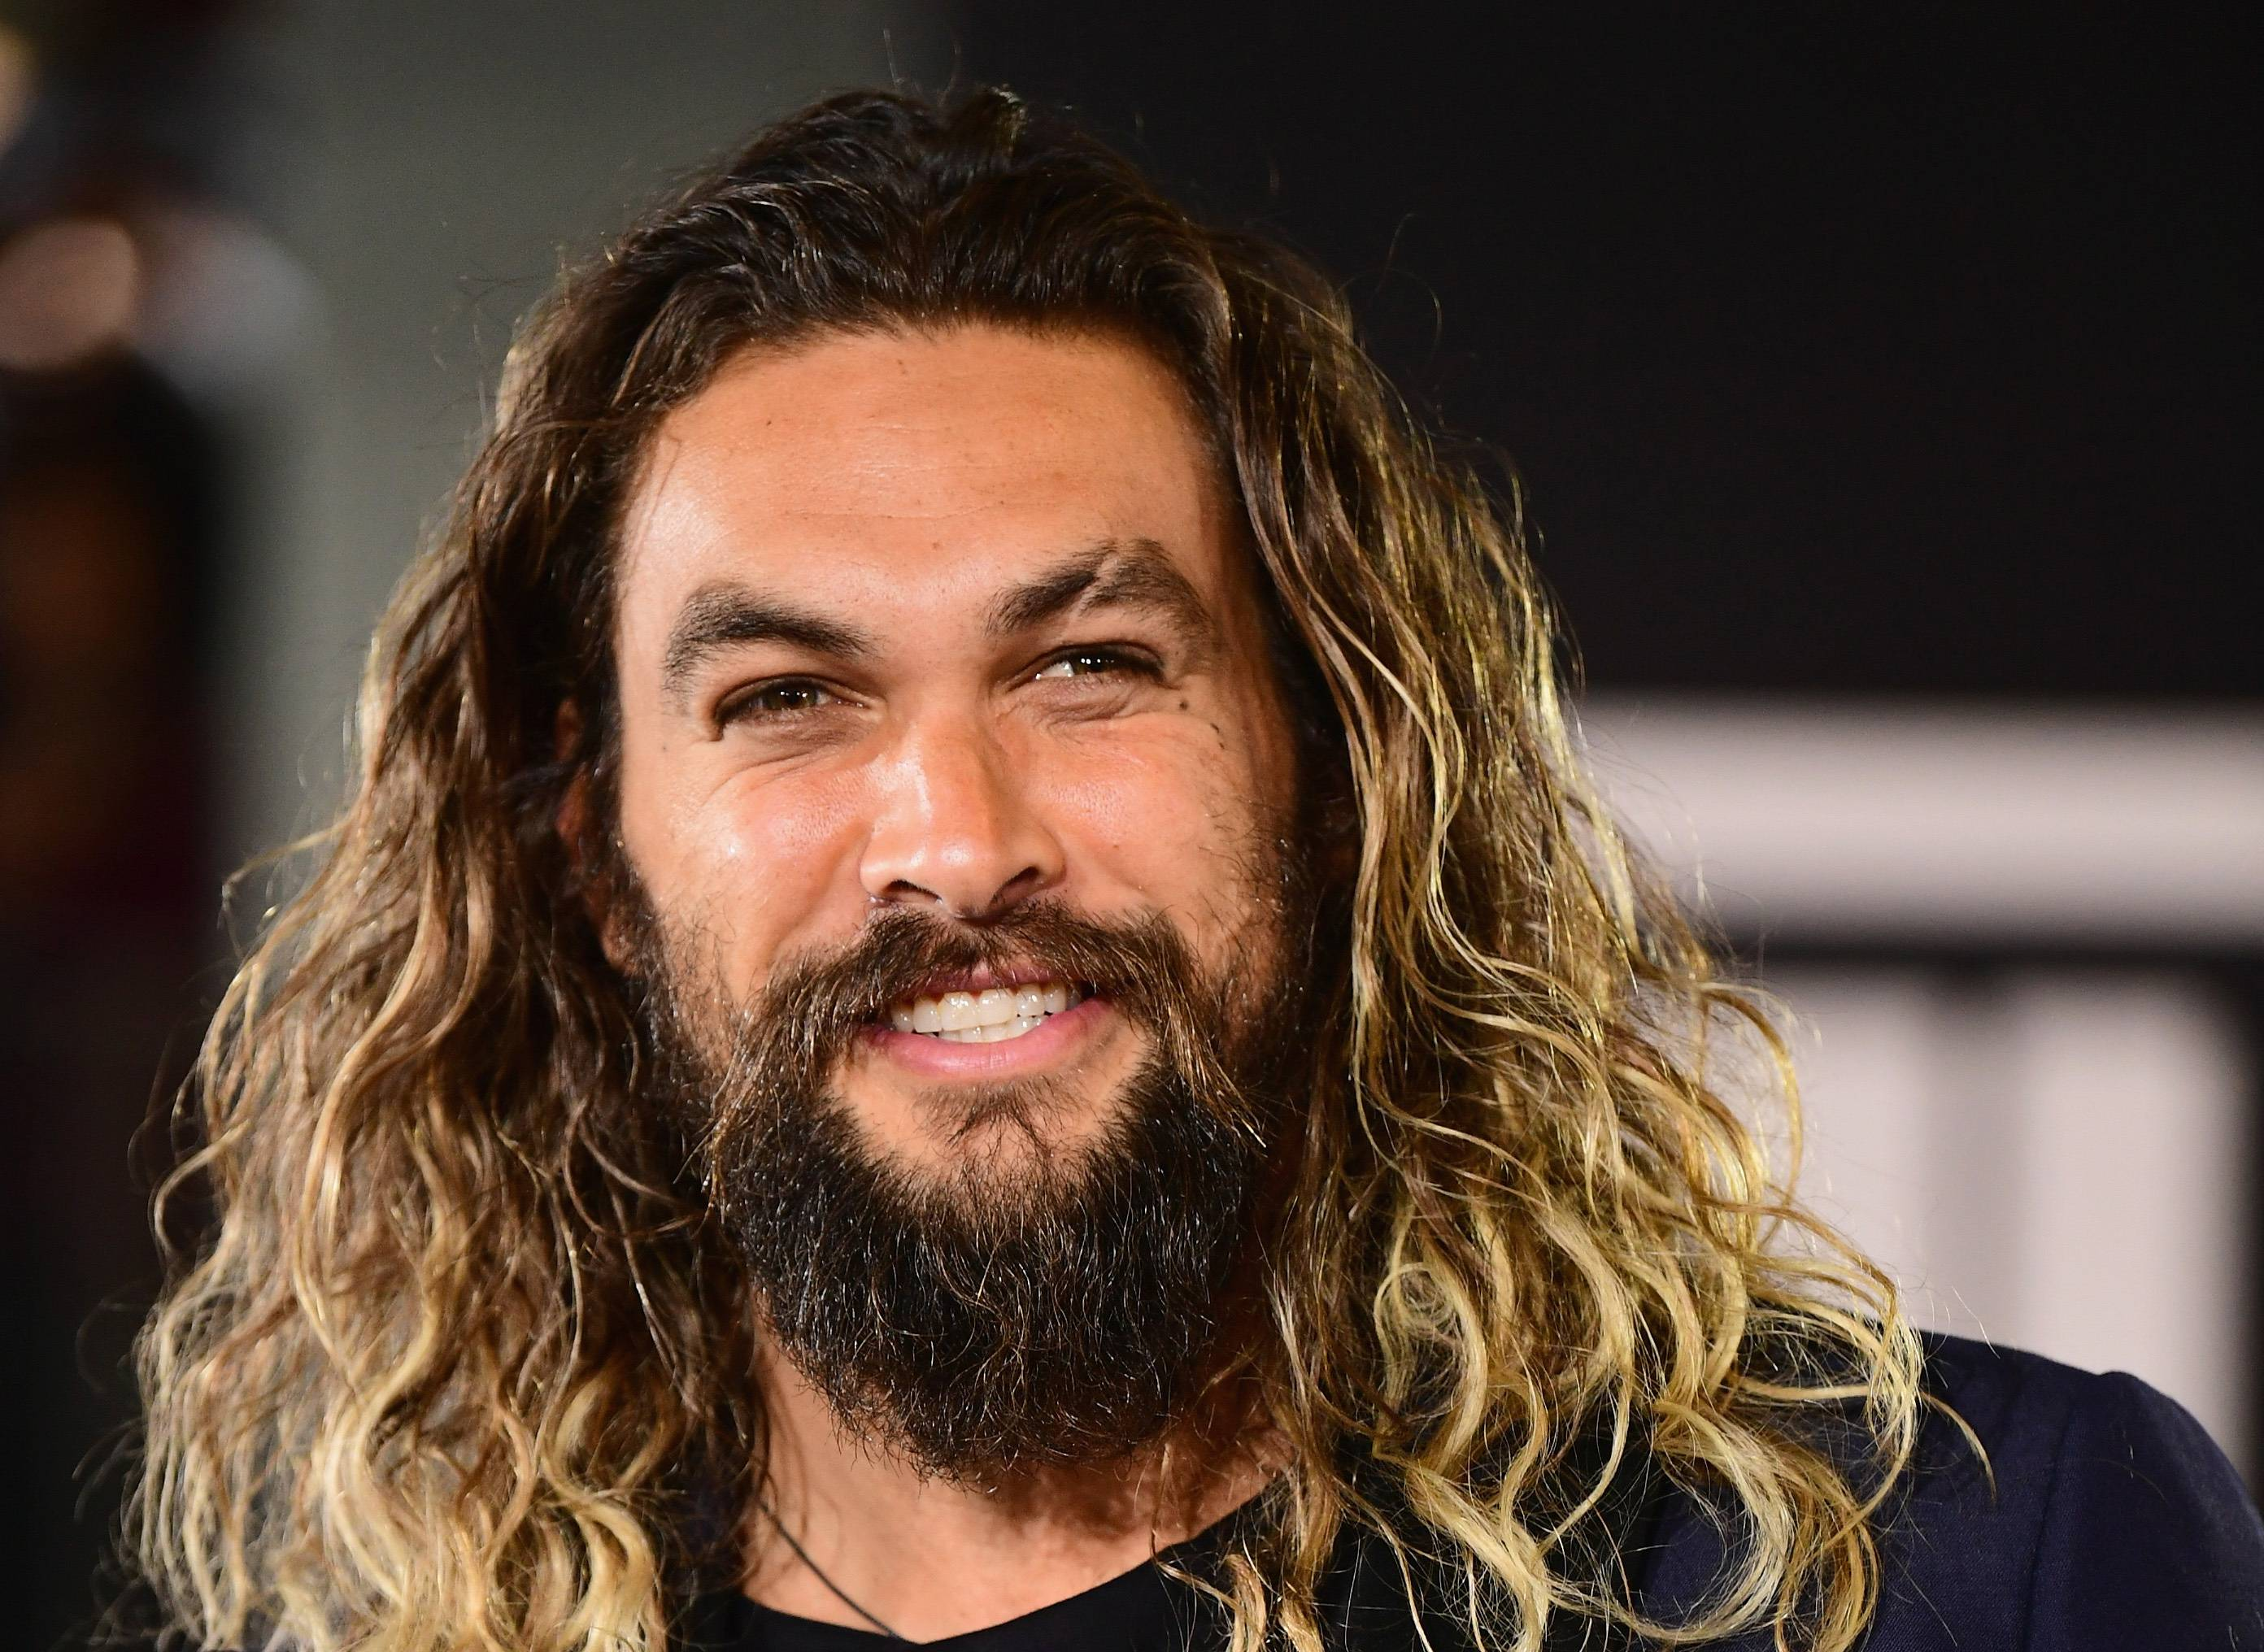 Joseph Jason Namakaeha Momoa was born on August 1 1979 in Honolulu Hawaii He is the son of Coni Lemke a photographer and Joseph Momoa a painter